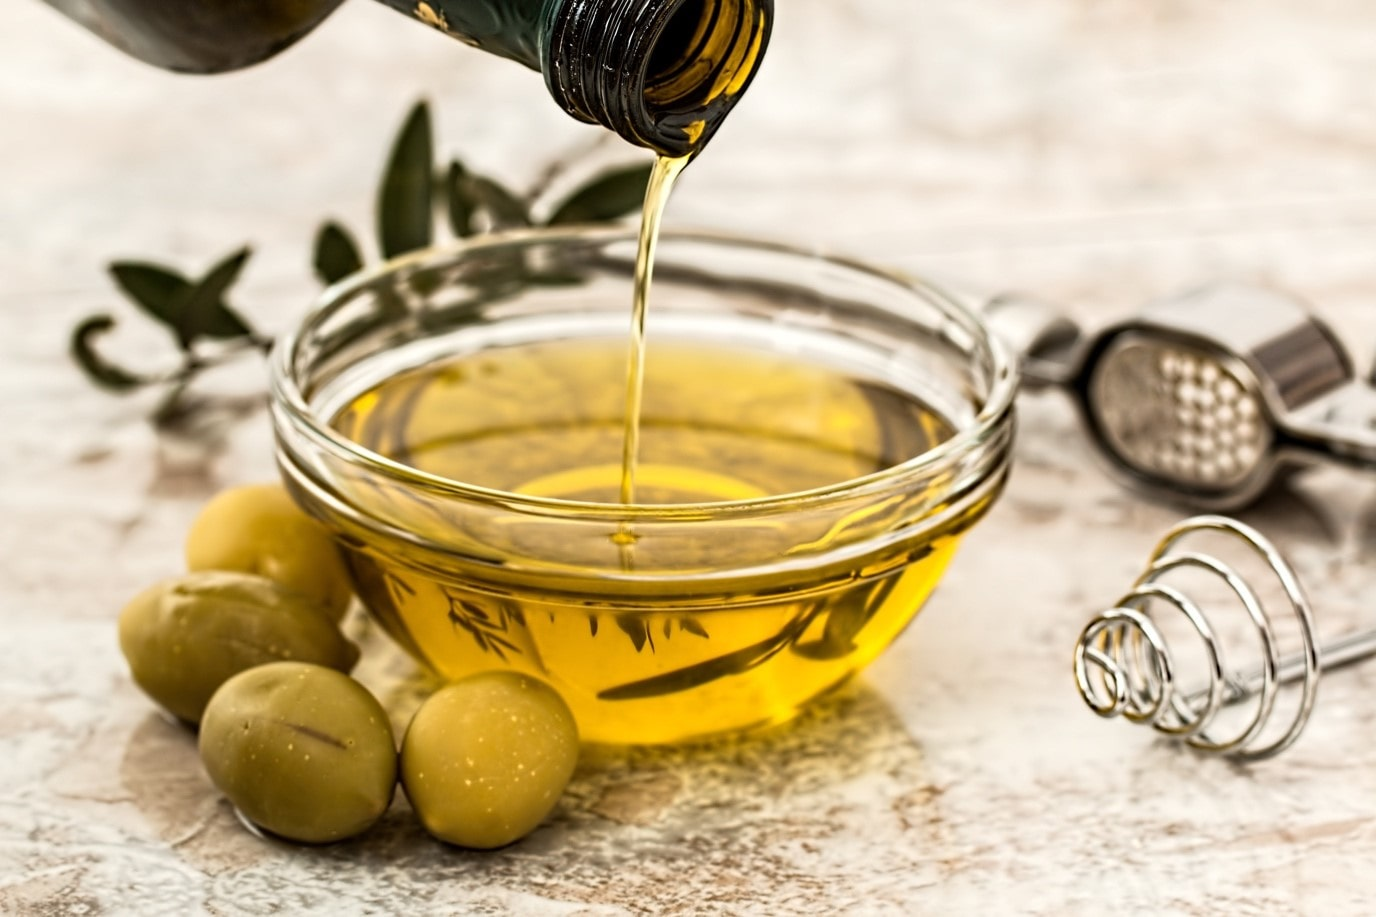 Olive oil as Essential Oil Carrier Oil